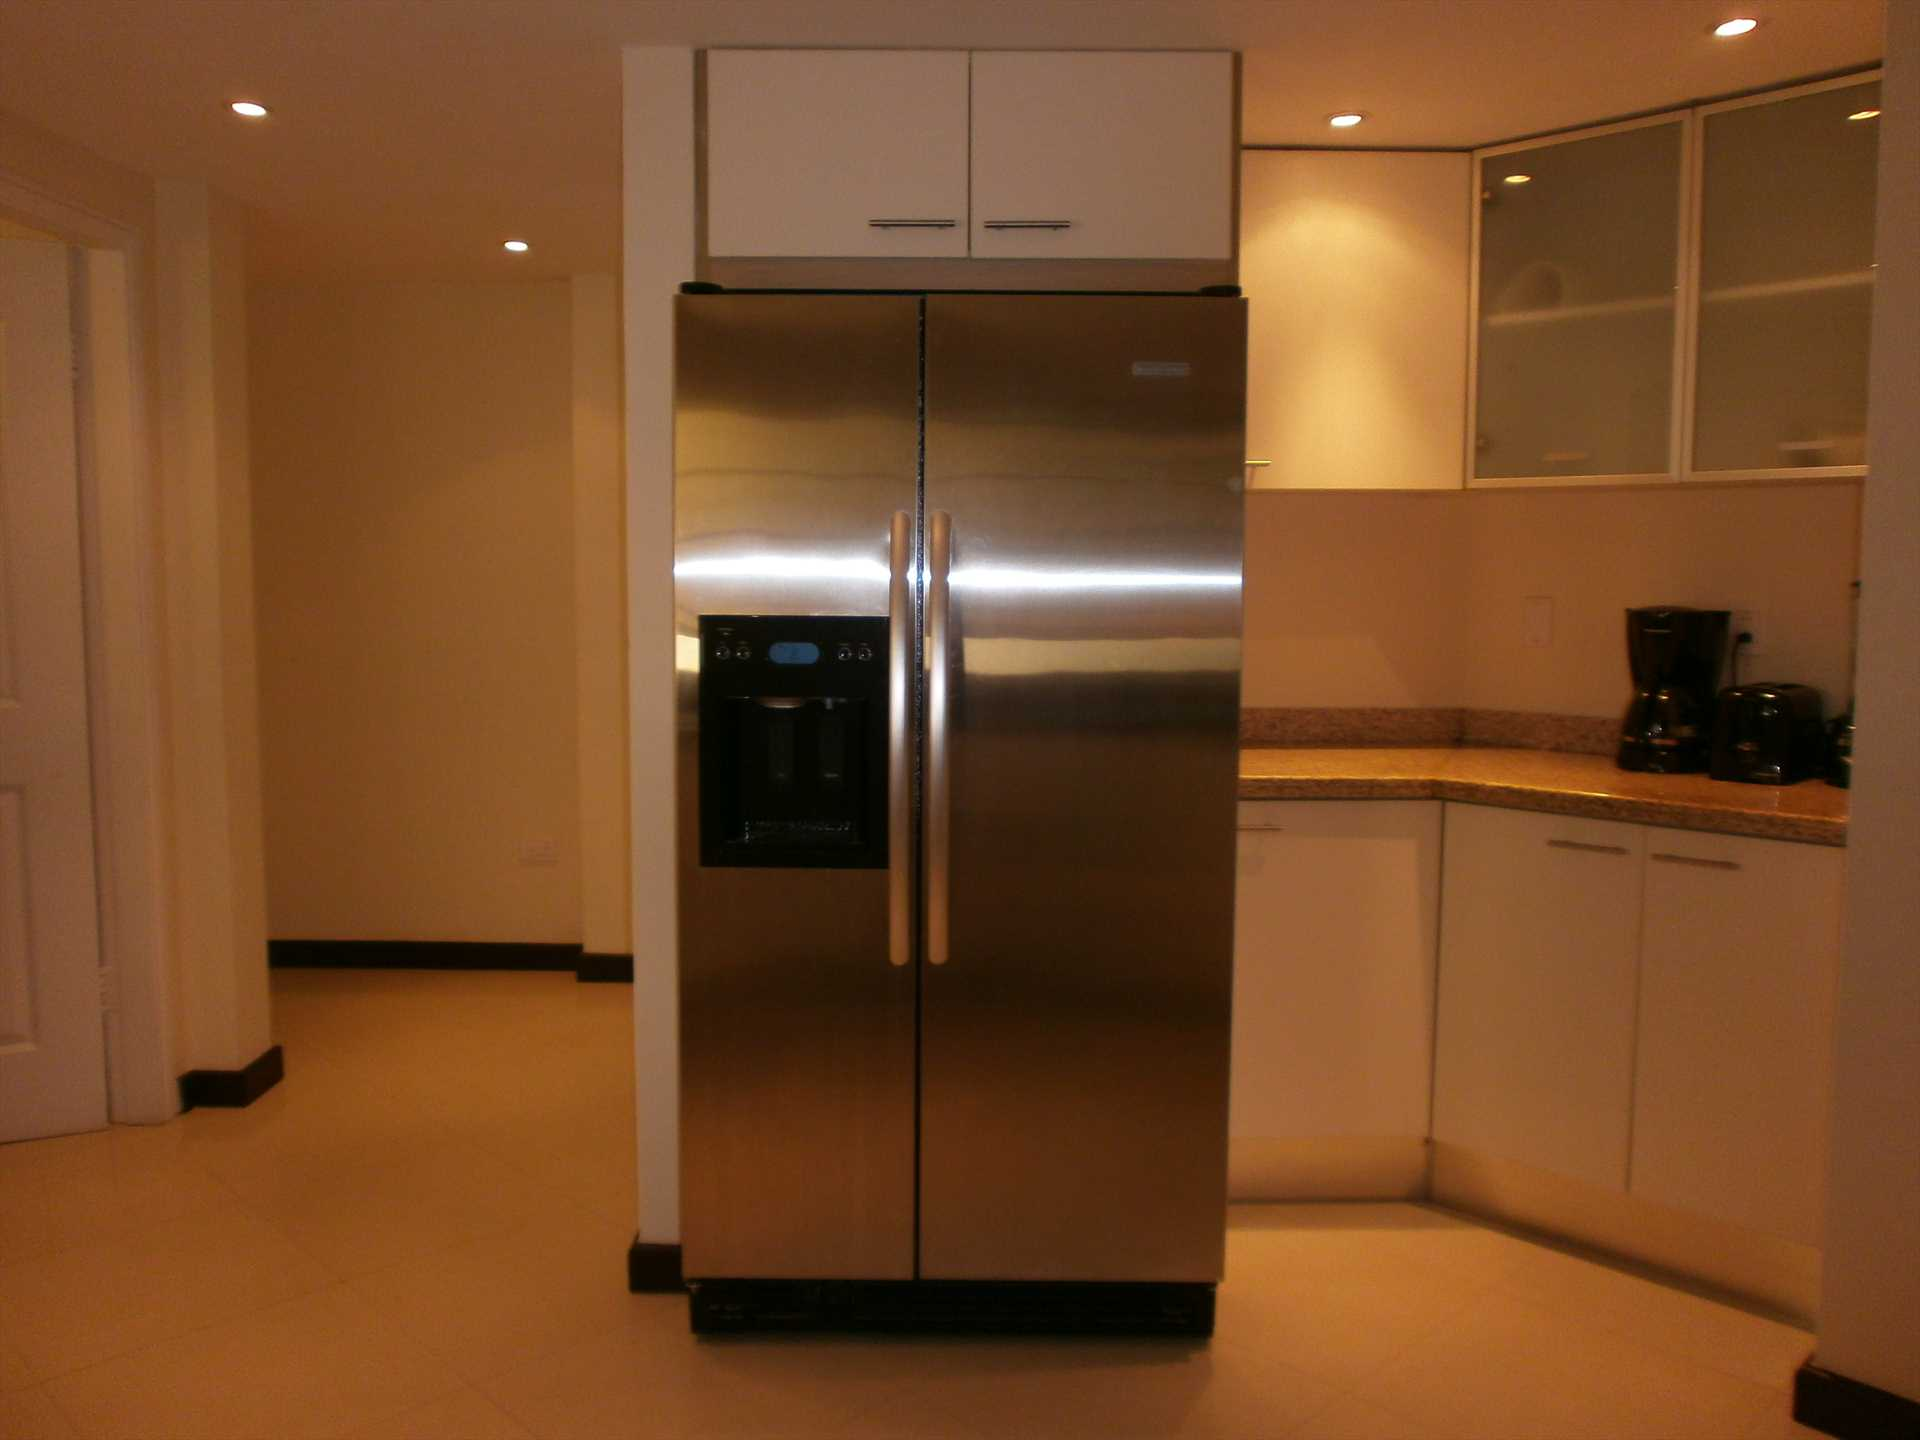 ...including a side-by-side fridge with ice/water dispensers.